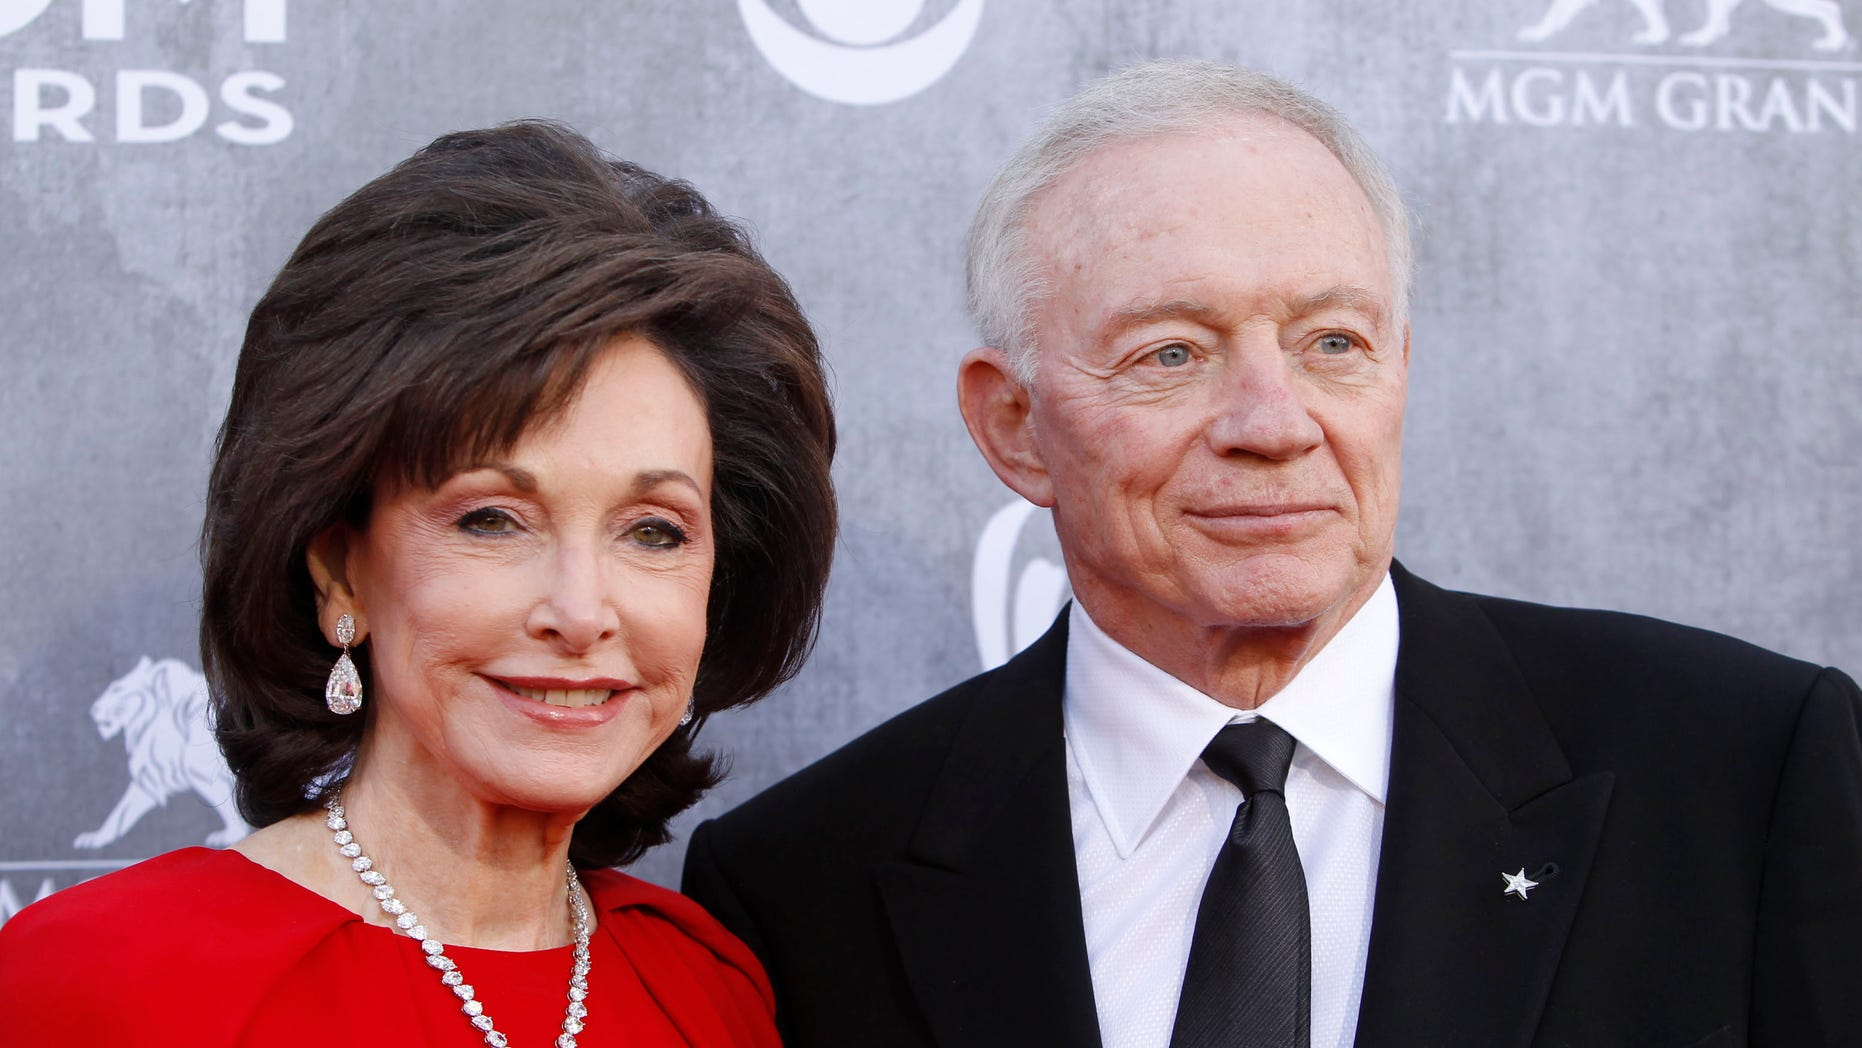 Dallas Cowboys owner Jerry Jones and his wife Gene arrive bat the 49th Annual Academy of Country Music Awards in Las Vegas, Nevada April 6, 2014.   REUTERS/Steve Marcus (UNITED STATES  - Tags: ENTERTAINMENT SPORT FOOTBALL)    (ACMAWARDS-ARRIVALS) - RTR3K6PK